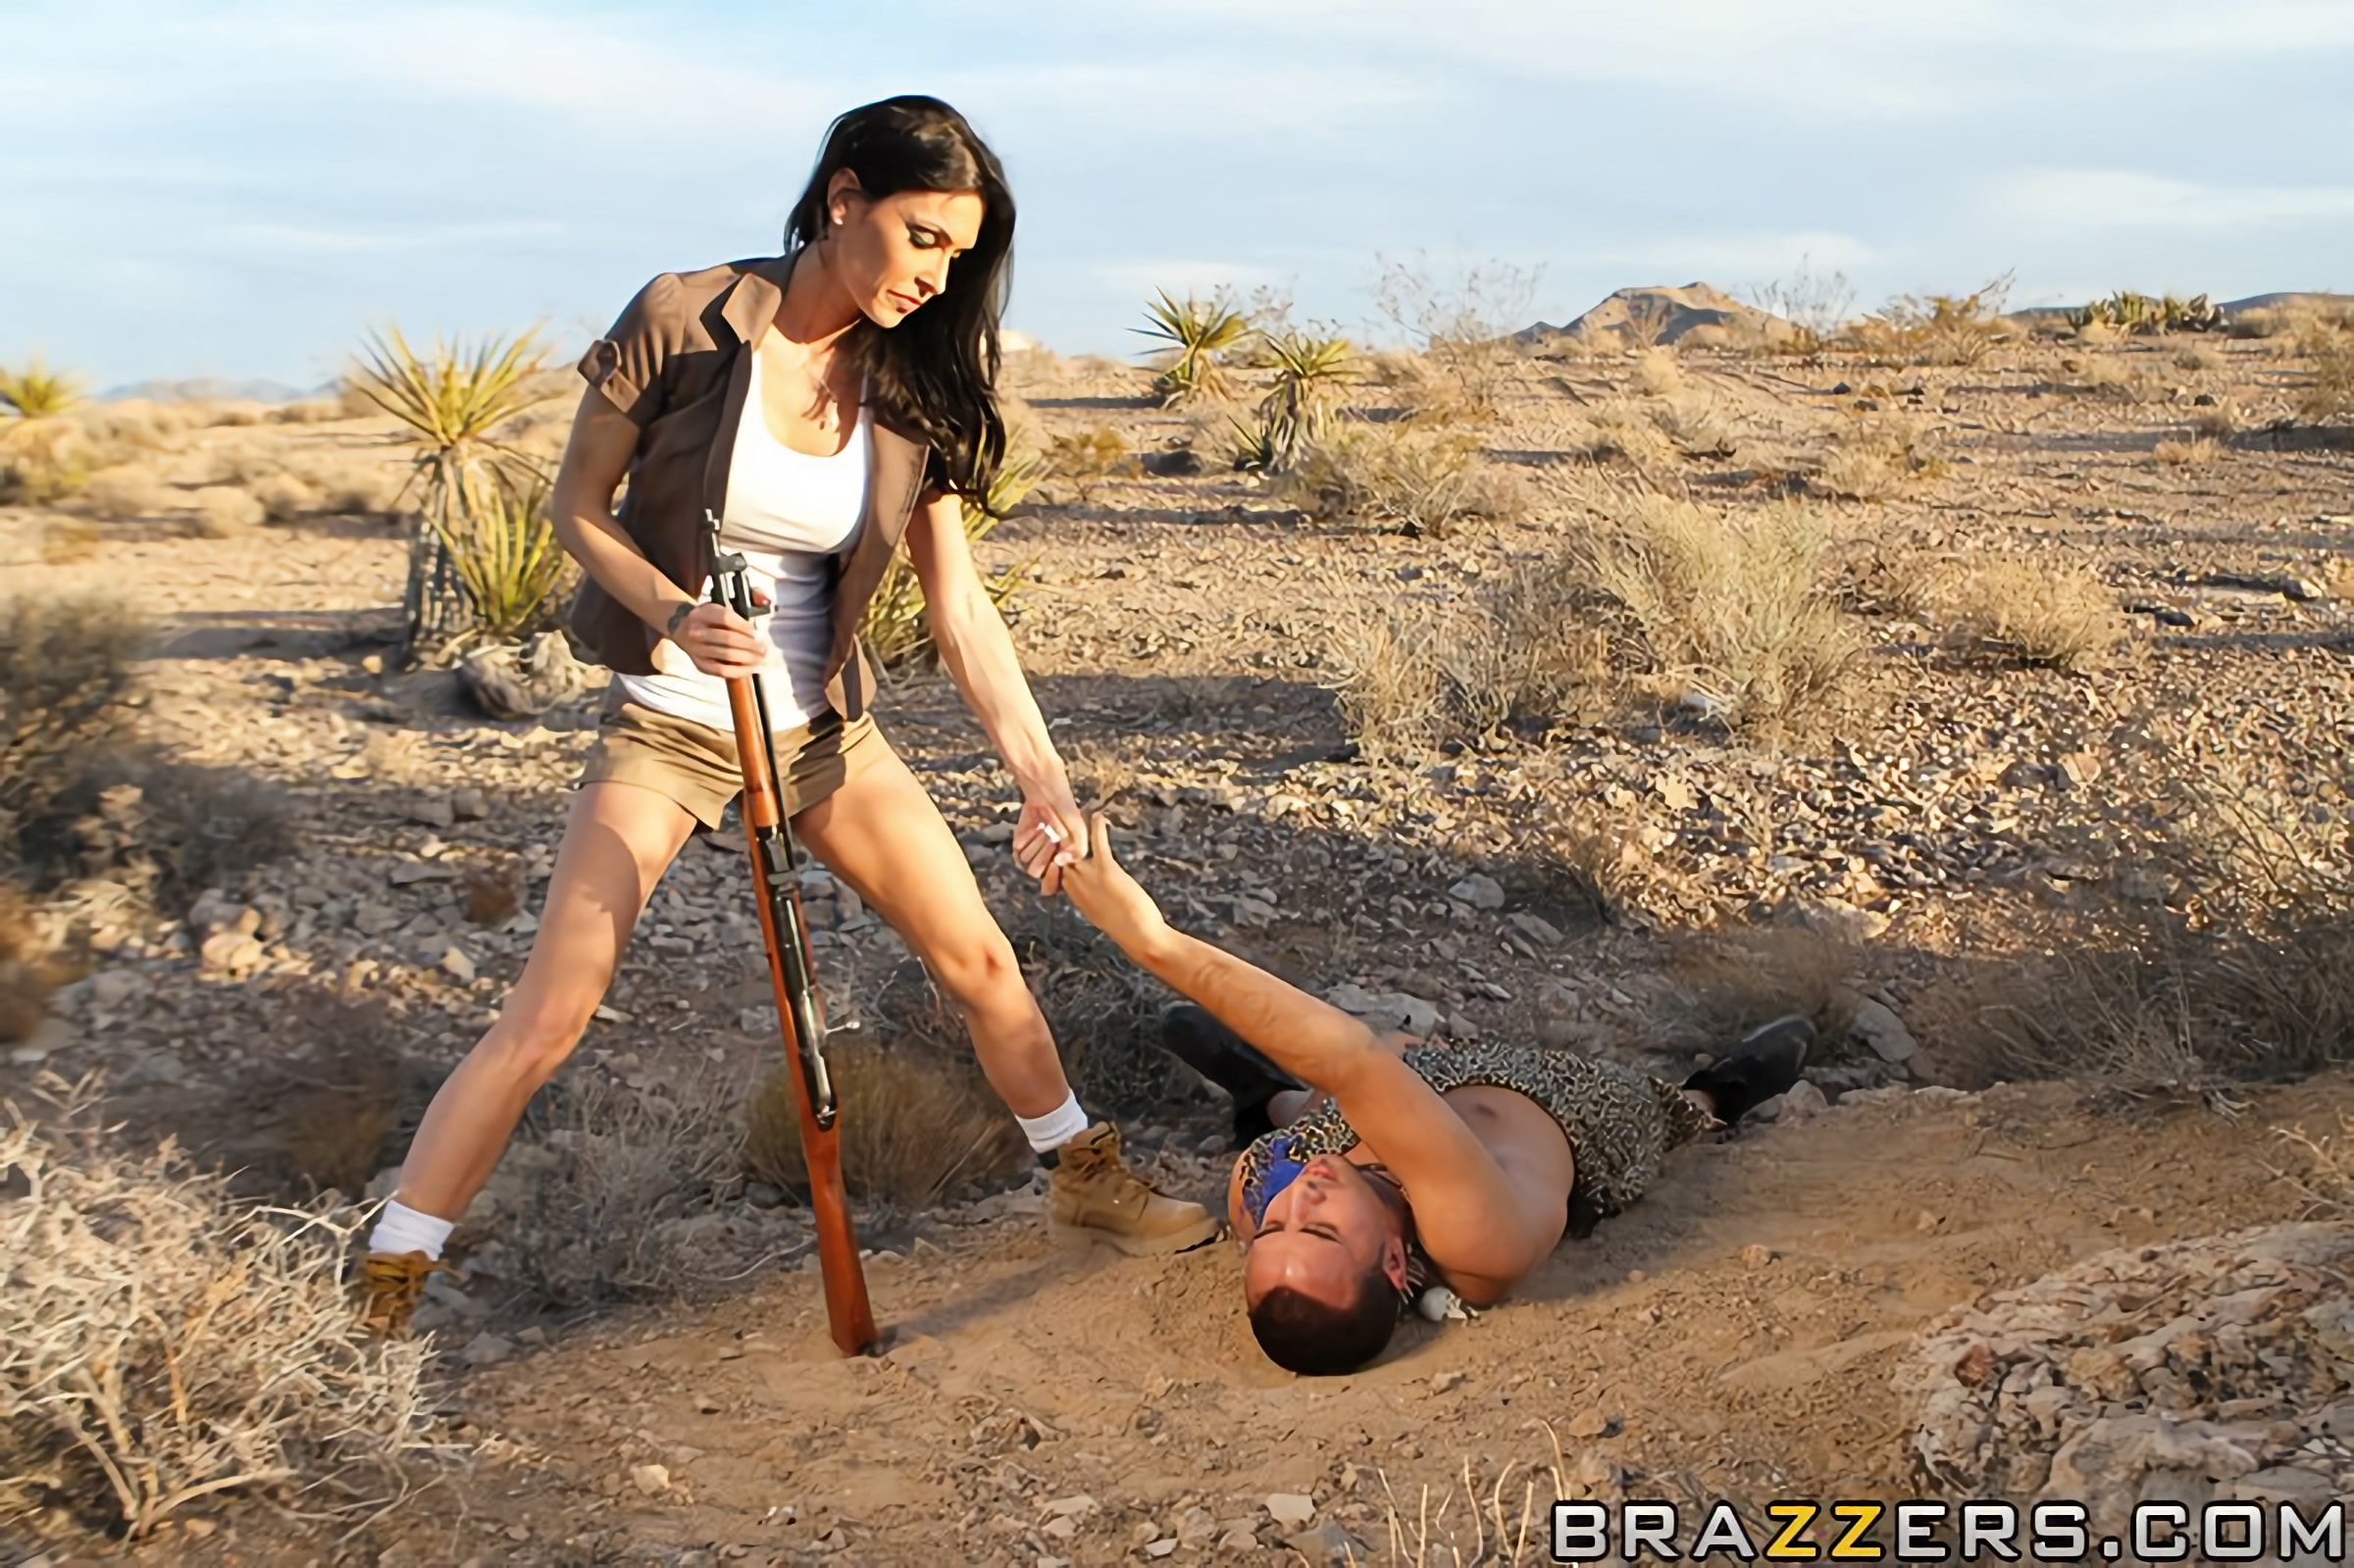 Brazzers 'The Cock Huntress' starring Jessica Jaymes (Photo 5)